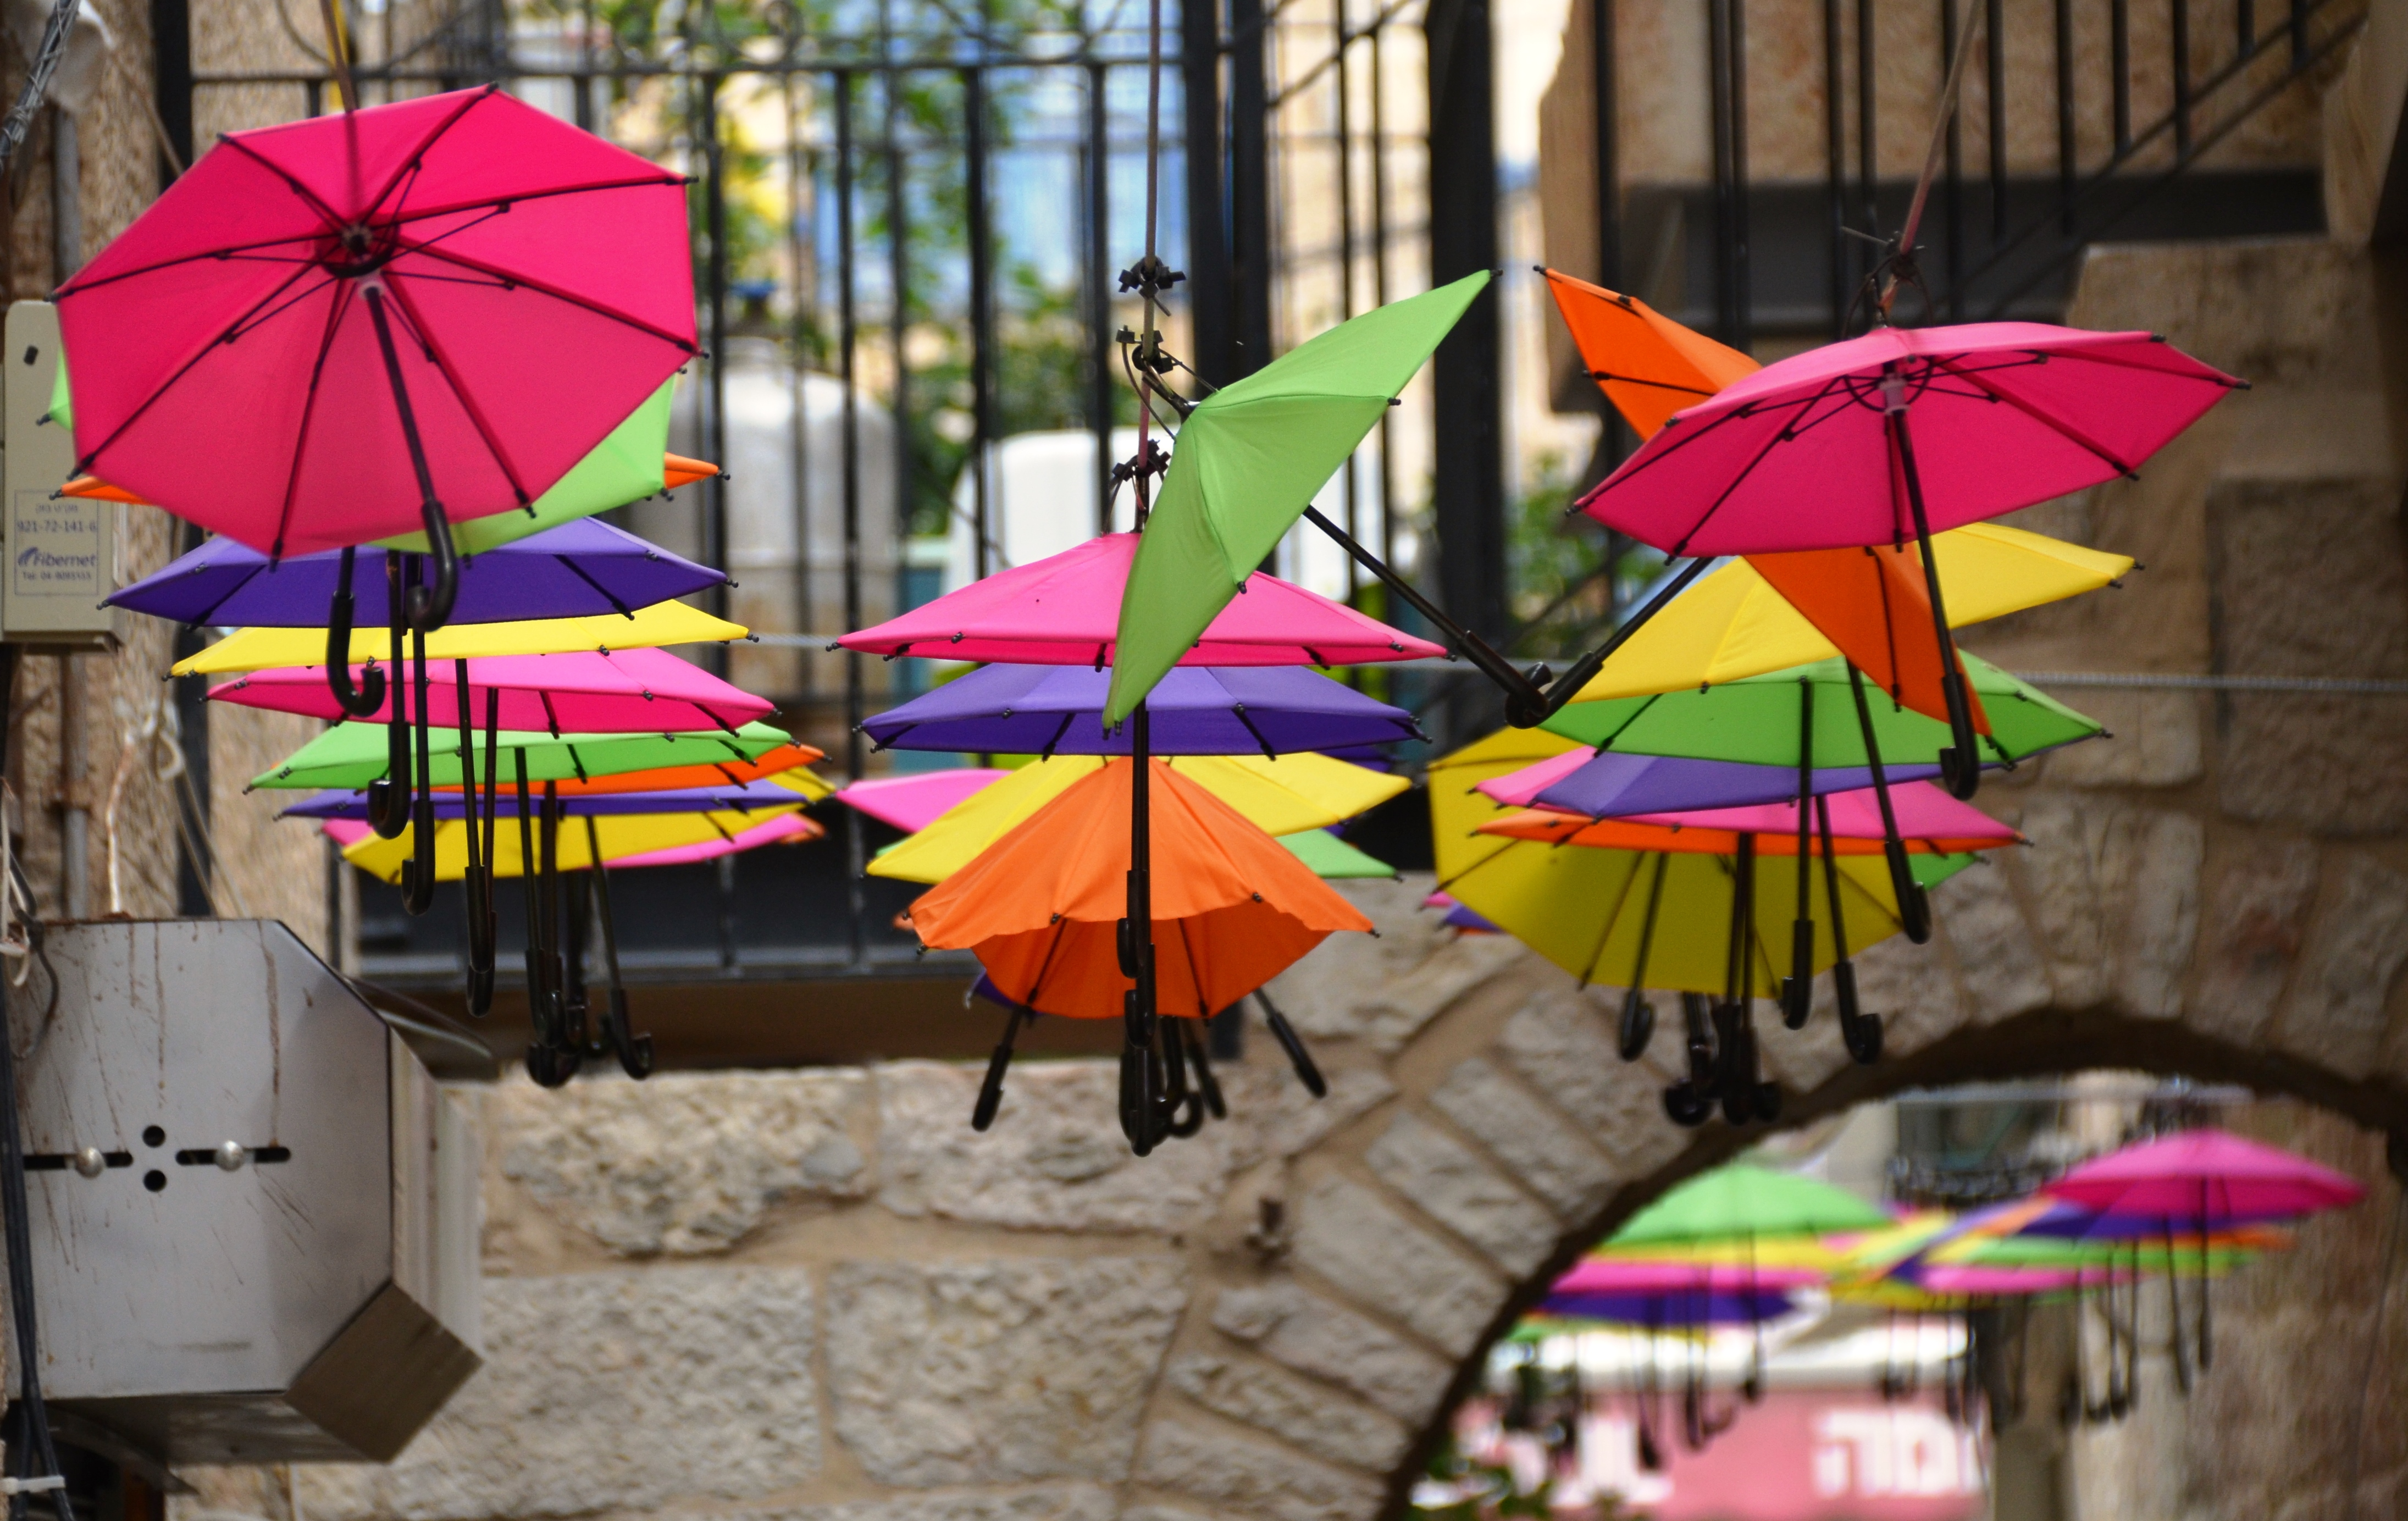 small umbrellas off Yoel Salomon Street Jerusalem Israel